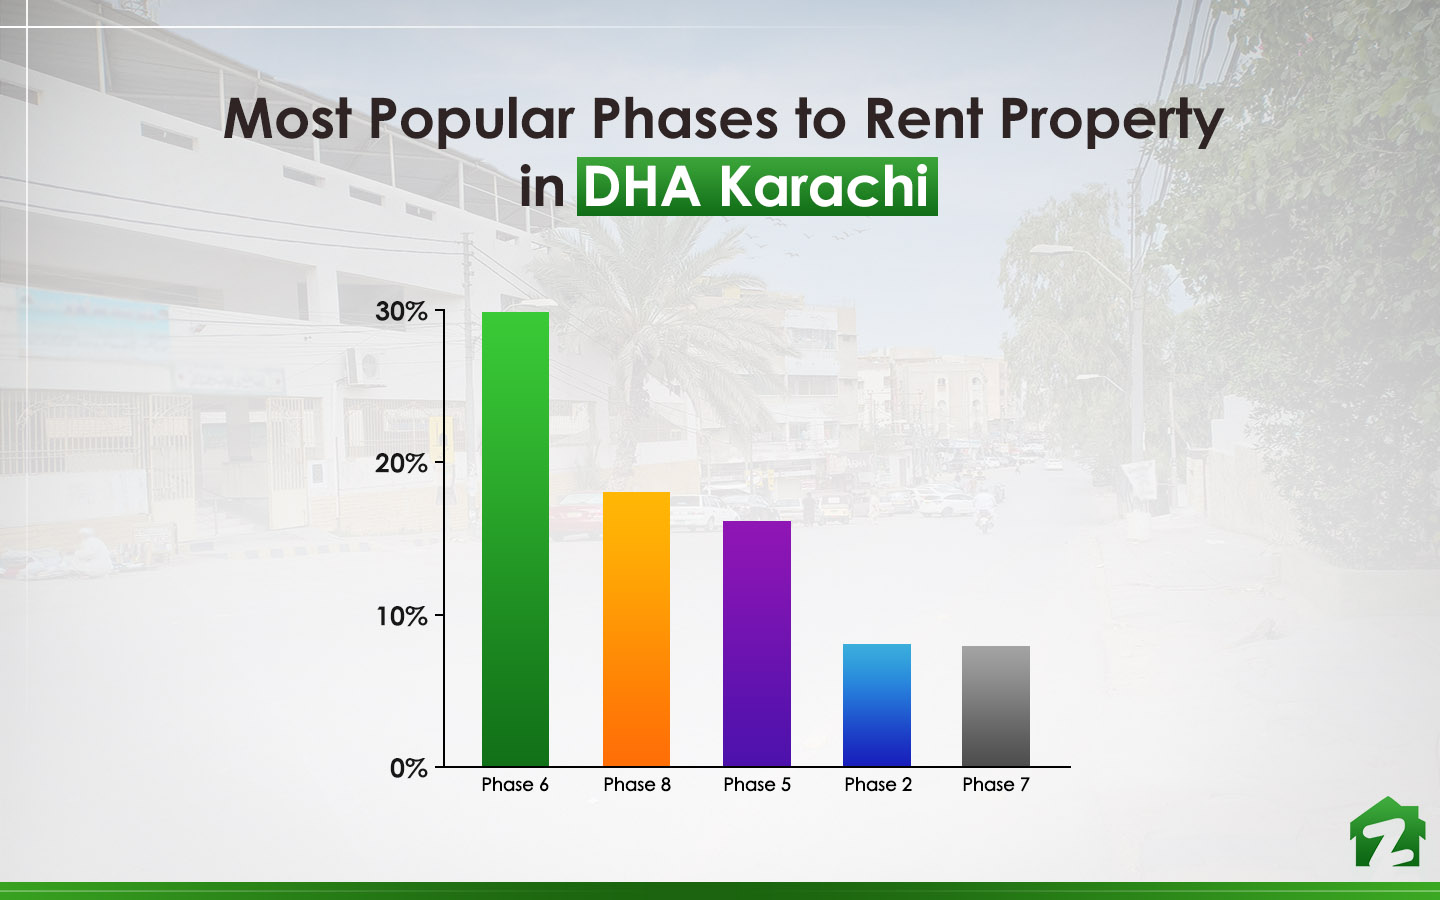 Phase 8 is the second most popular phase to rent a property in DHA, Karachi